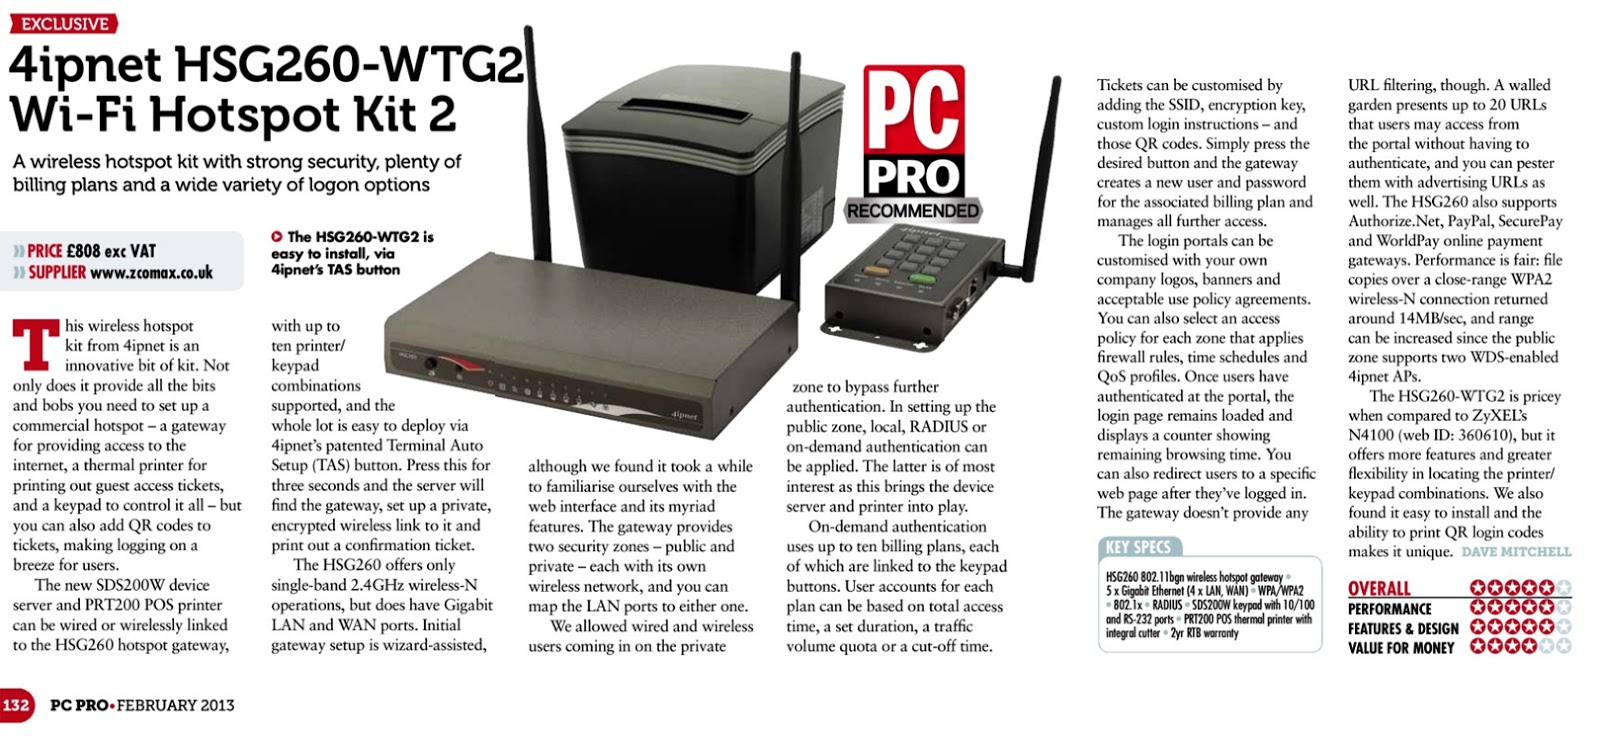 4ipnet awarded PC Pro Recommended and IT Pro Corporate Choice Award ...